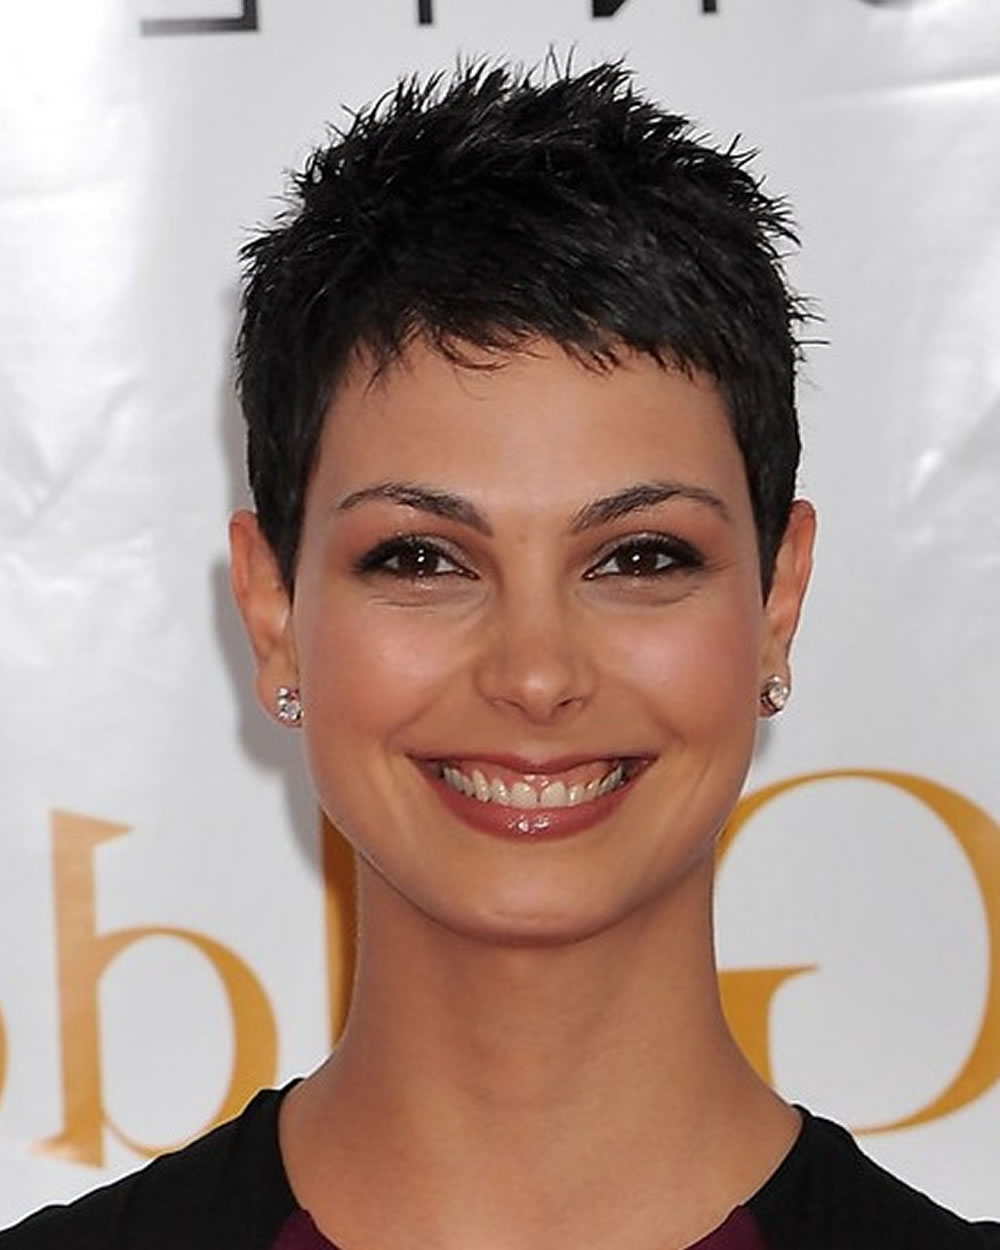 31 Chic Short Haircut Ideas 2018 & Pixie & Bob Hair Inspiration For Pertaining To Chic Short Hair Cuts (View 9 of 25)